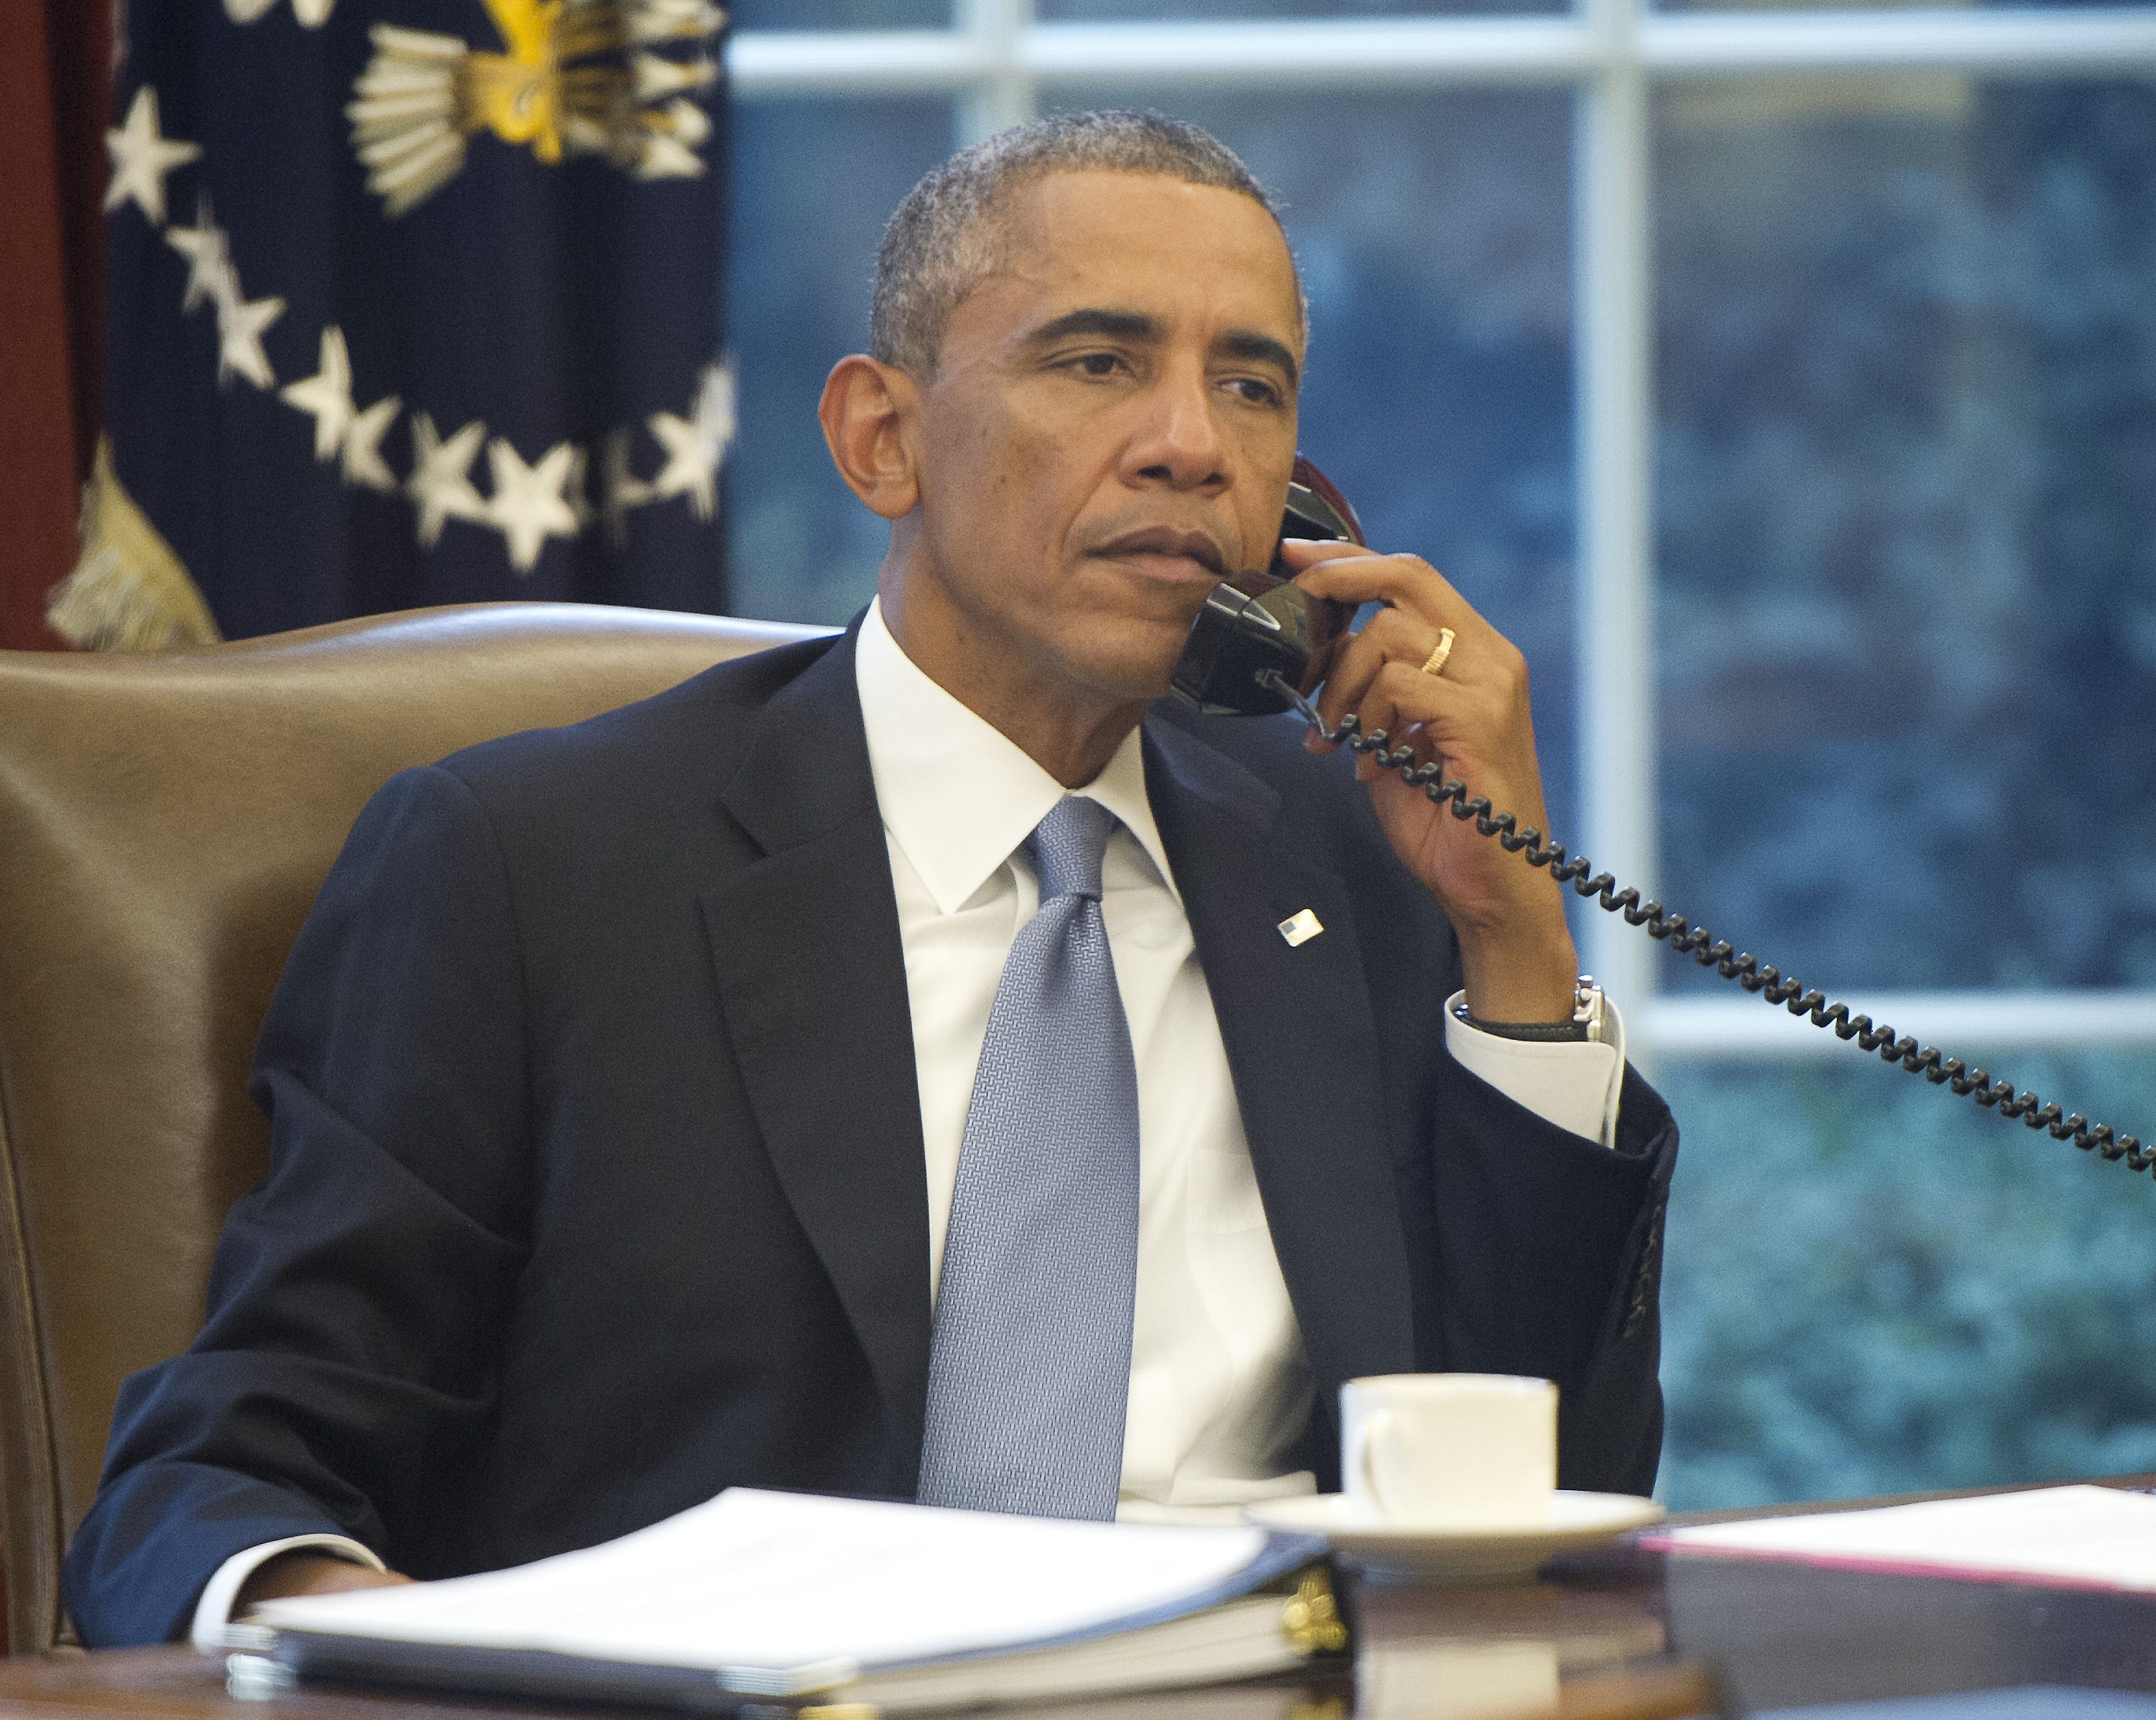 President Obama speaks on the phone with King Abdallah Abd al Aziz of the Kingdom of Saudi Arabia at White House in Washington, on Sept. 10, 2014